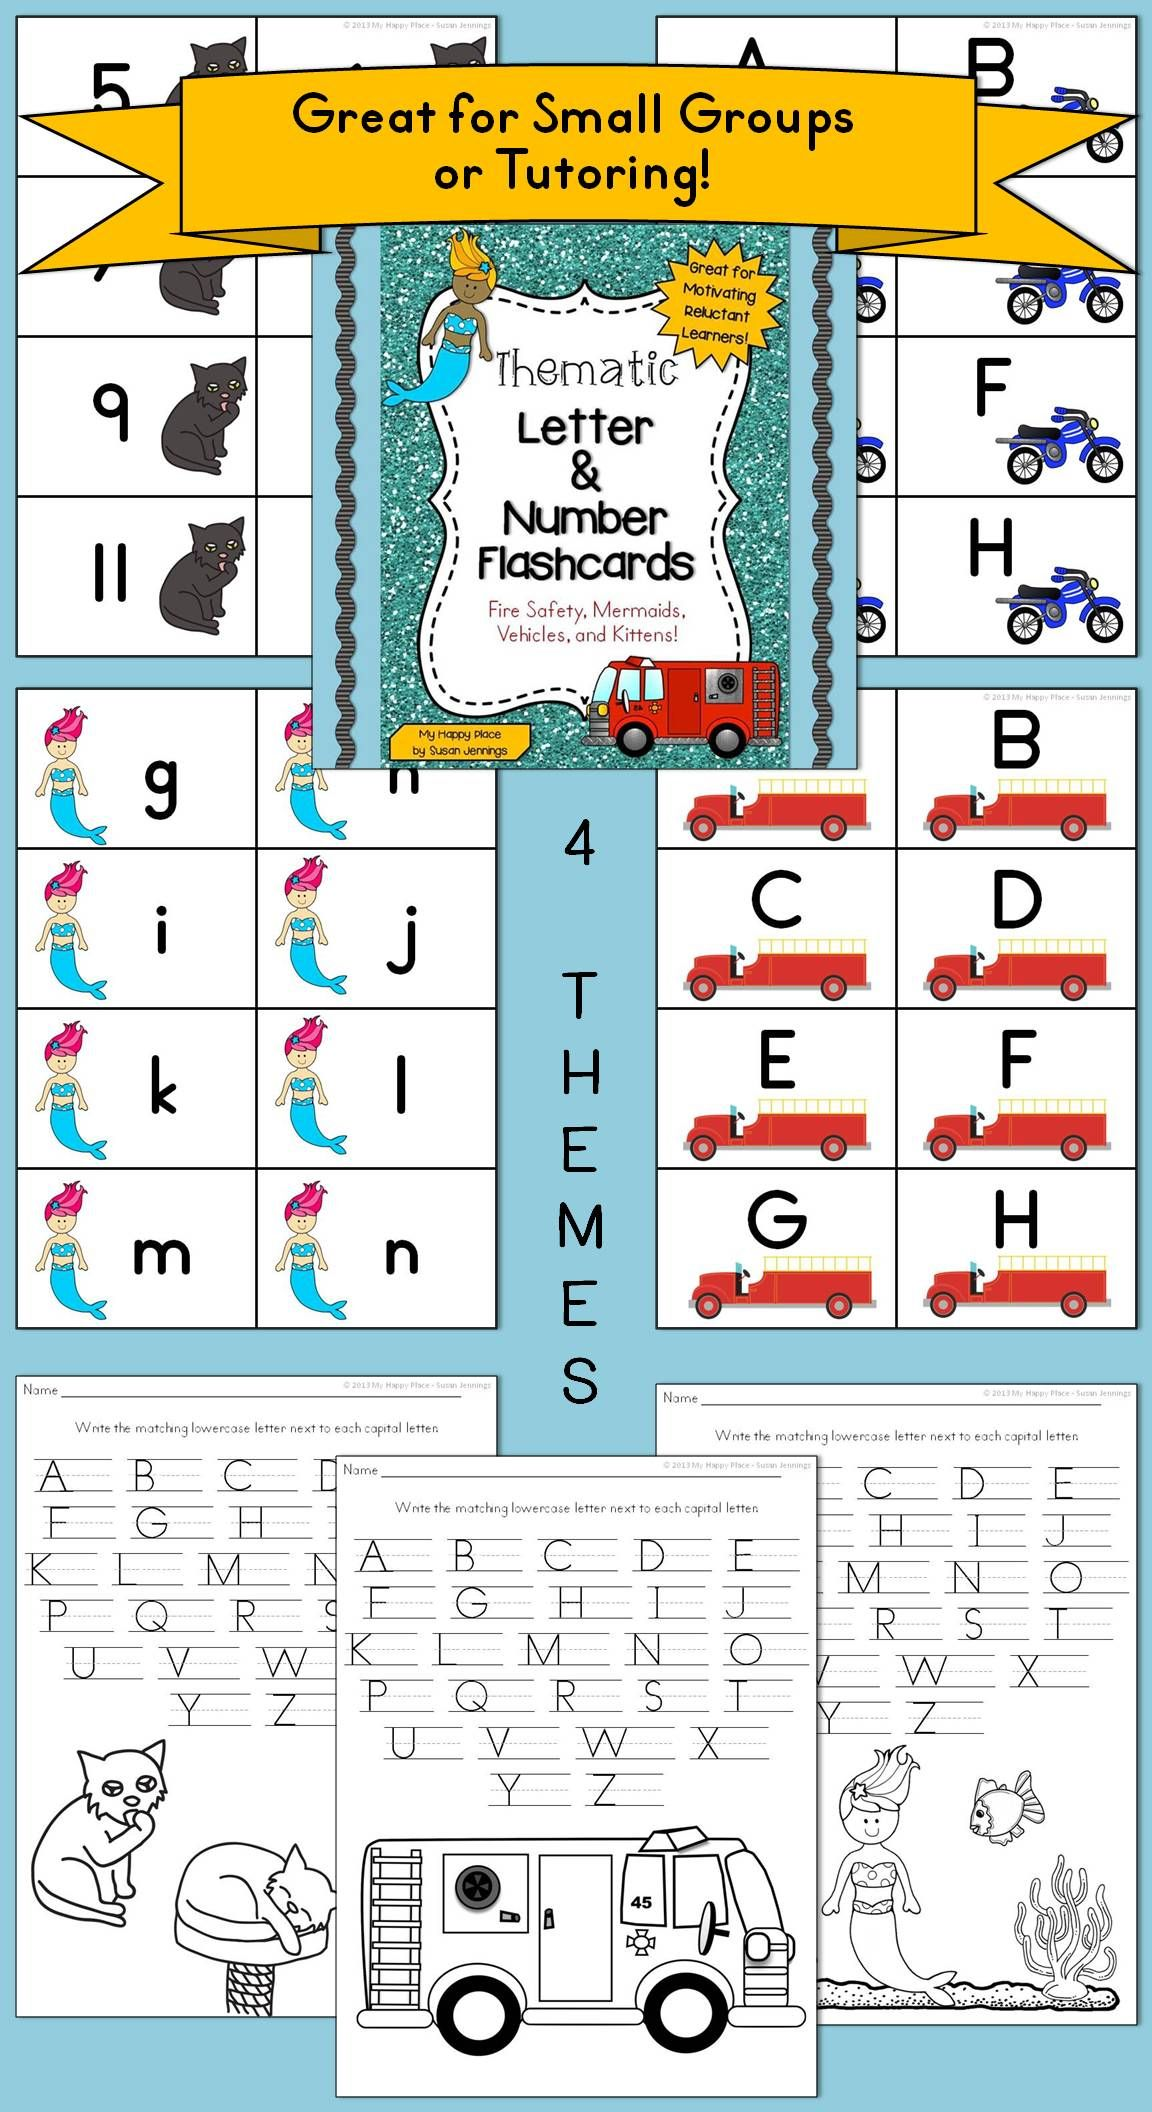 Thematic ABC & 123 - Flashcards: Fire Safety, Mermaids, Vehicles ...